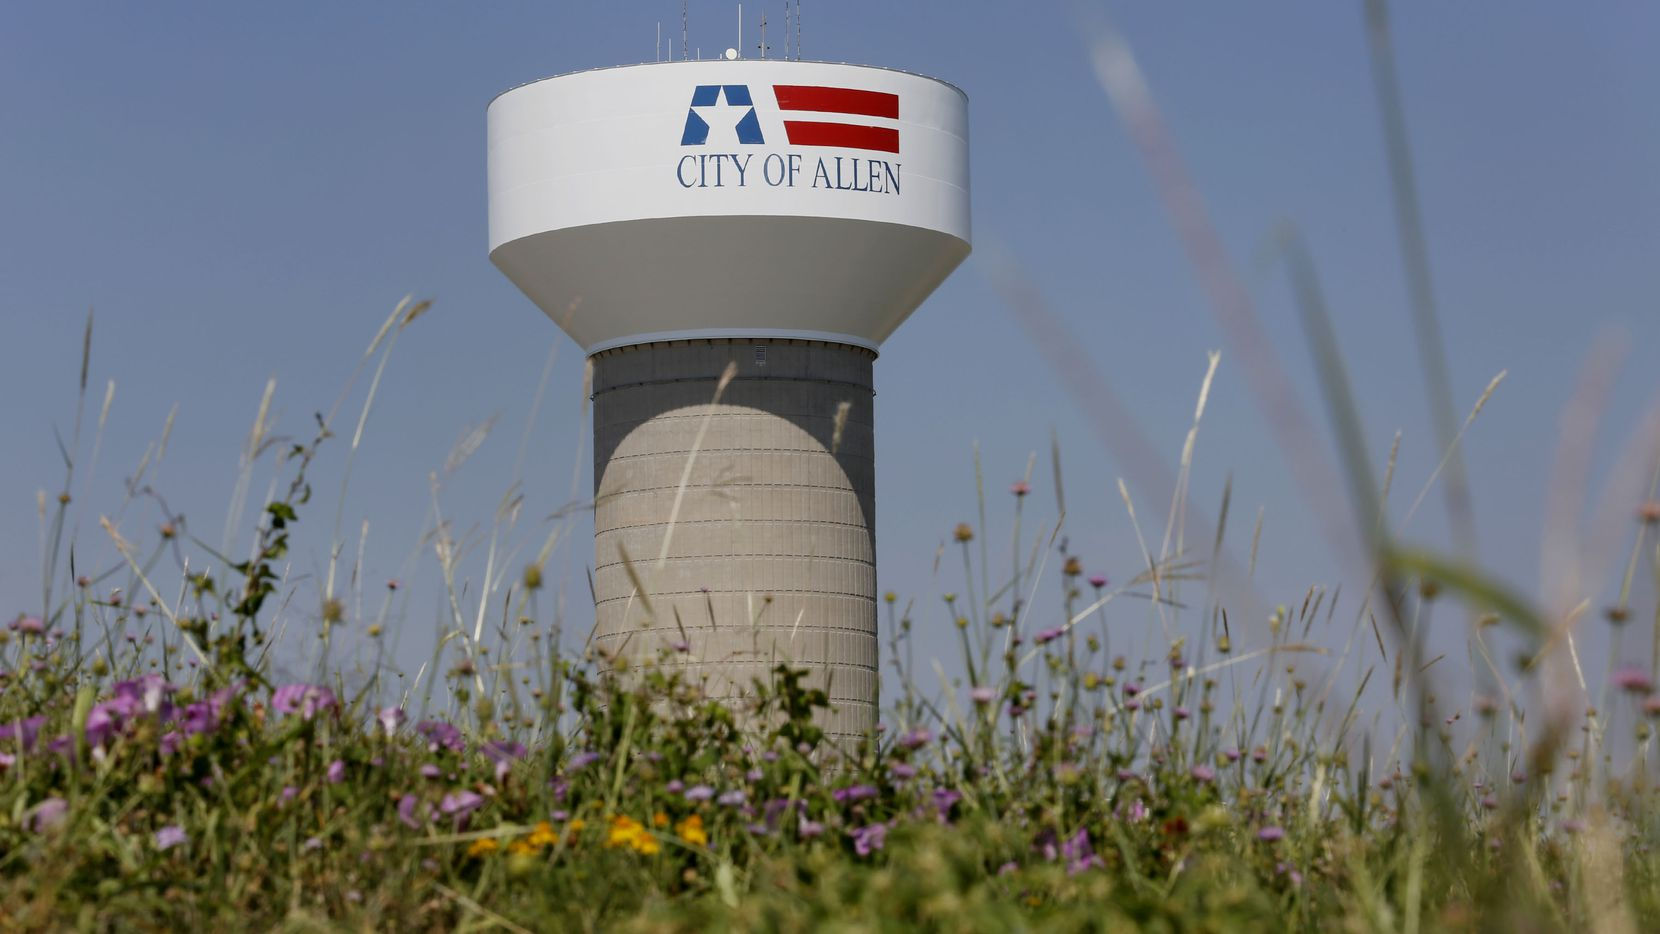 High Street Residential - a division of Trammell Crow Co. - plans more than 600 apartments.A City of Allen water tower near Prestige Circle and Bethany Drive in Allen, Texas Thursday August 14, 2014. (Andy Jacobsohn/The Dallas Morning News)